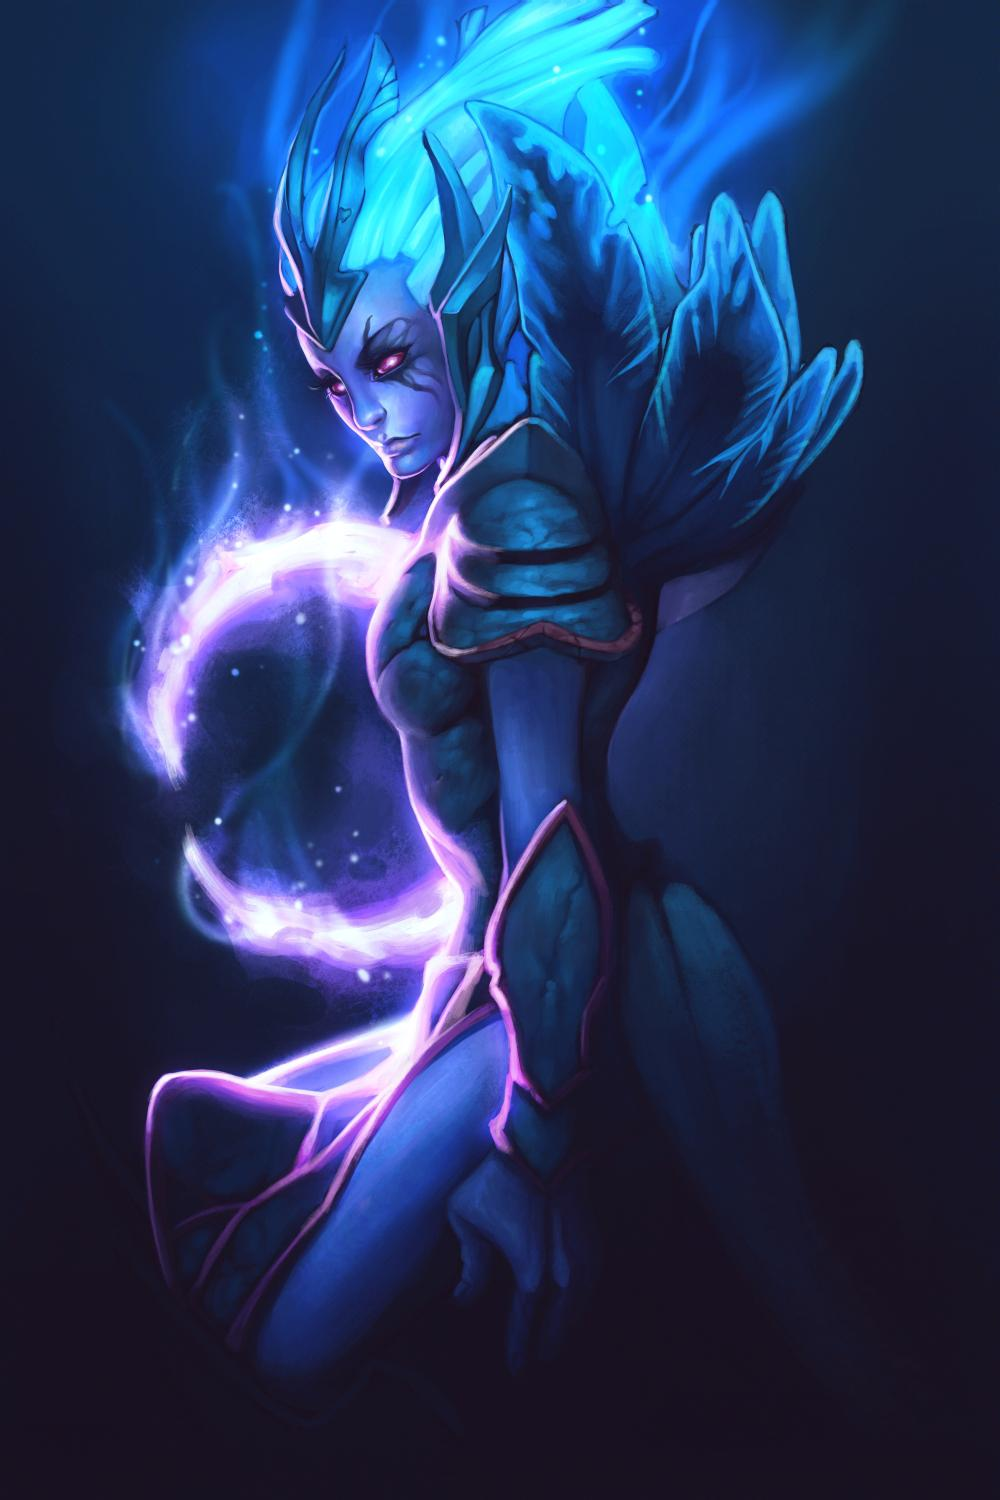 Dota 2 Android Wallpapers - Wallpaper Cave